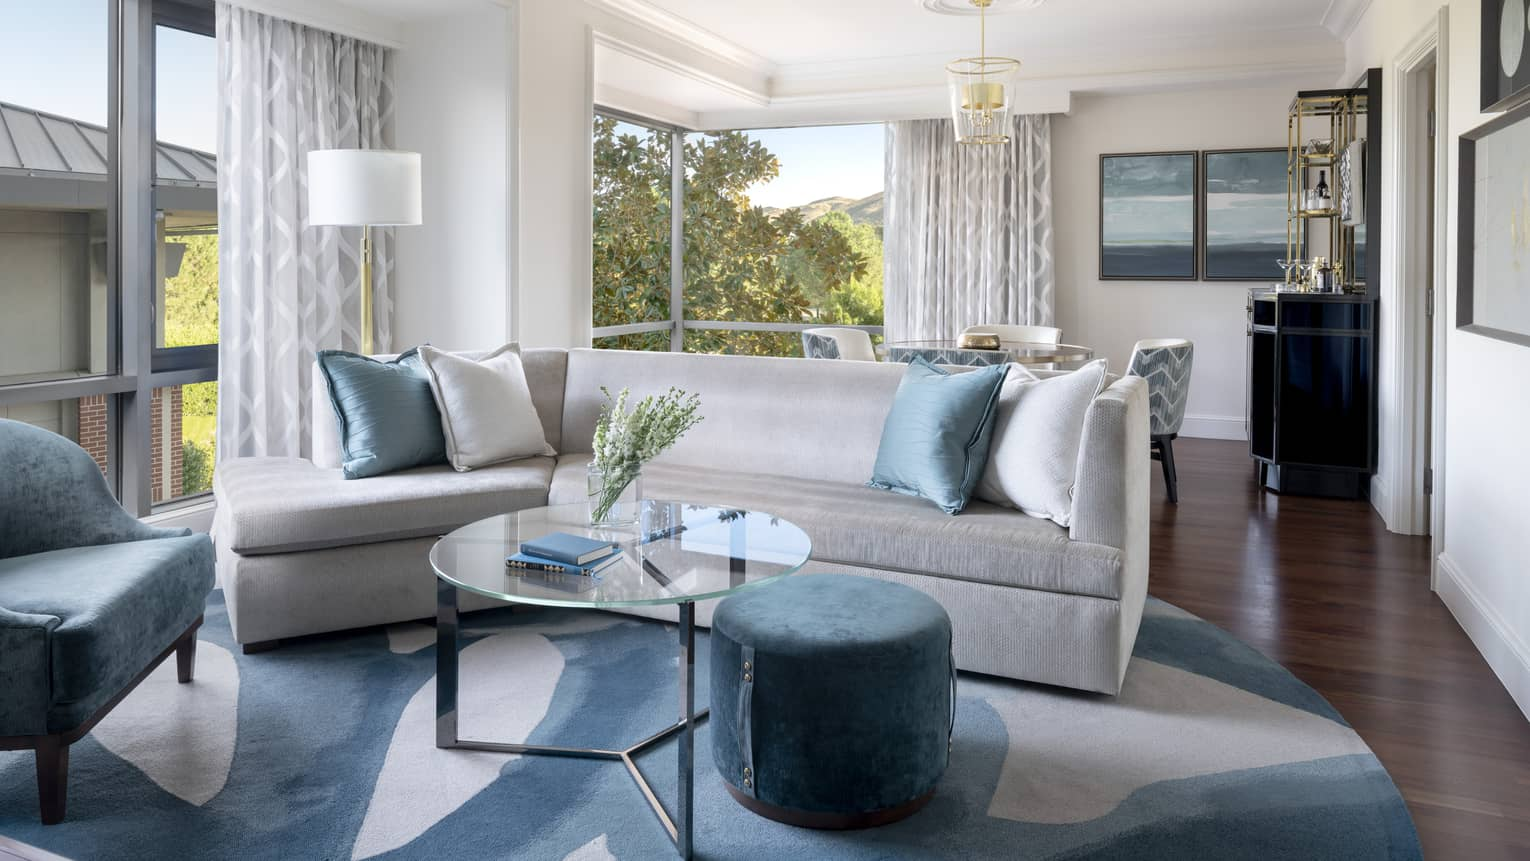 Silver couch with blue pillows, a blue chair, glass coffee table, and a view of trees